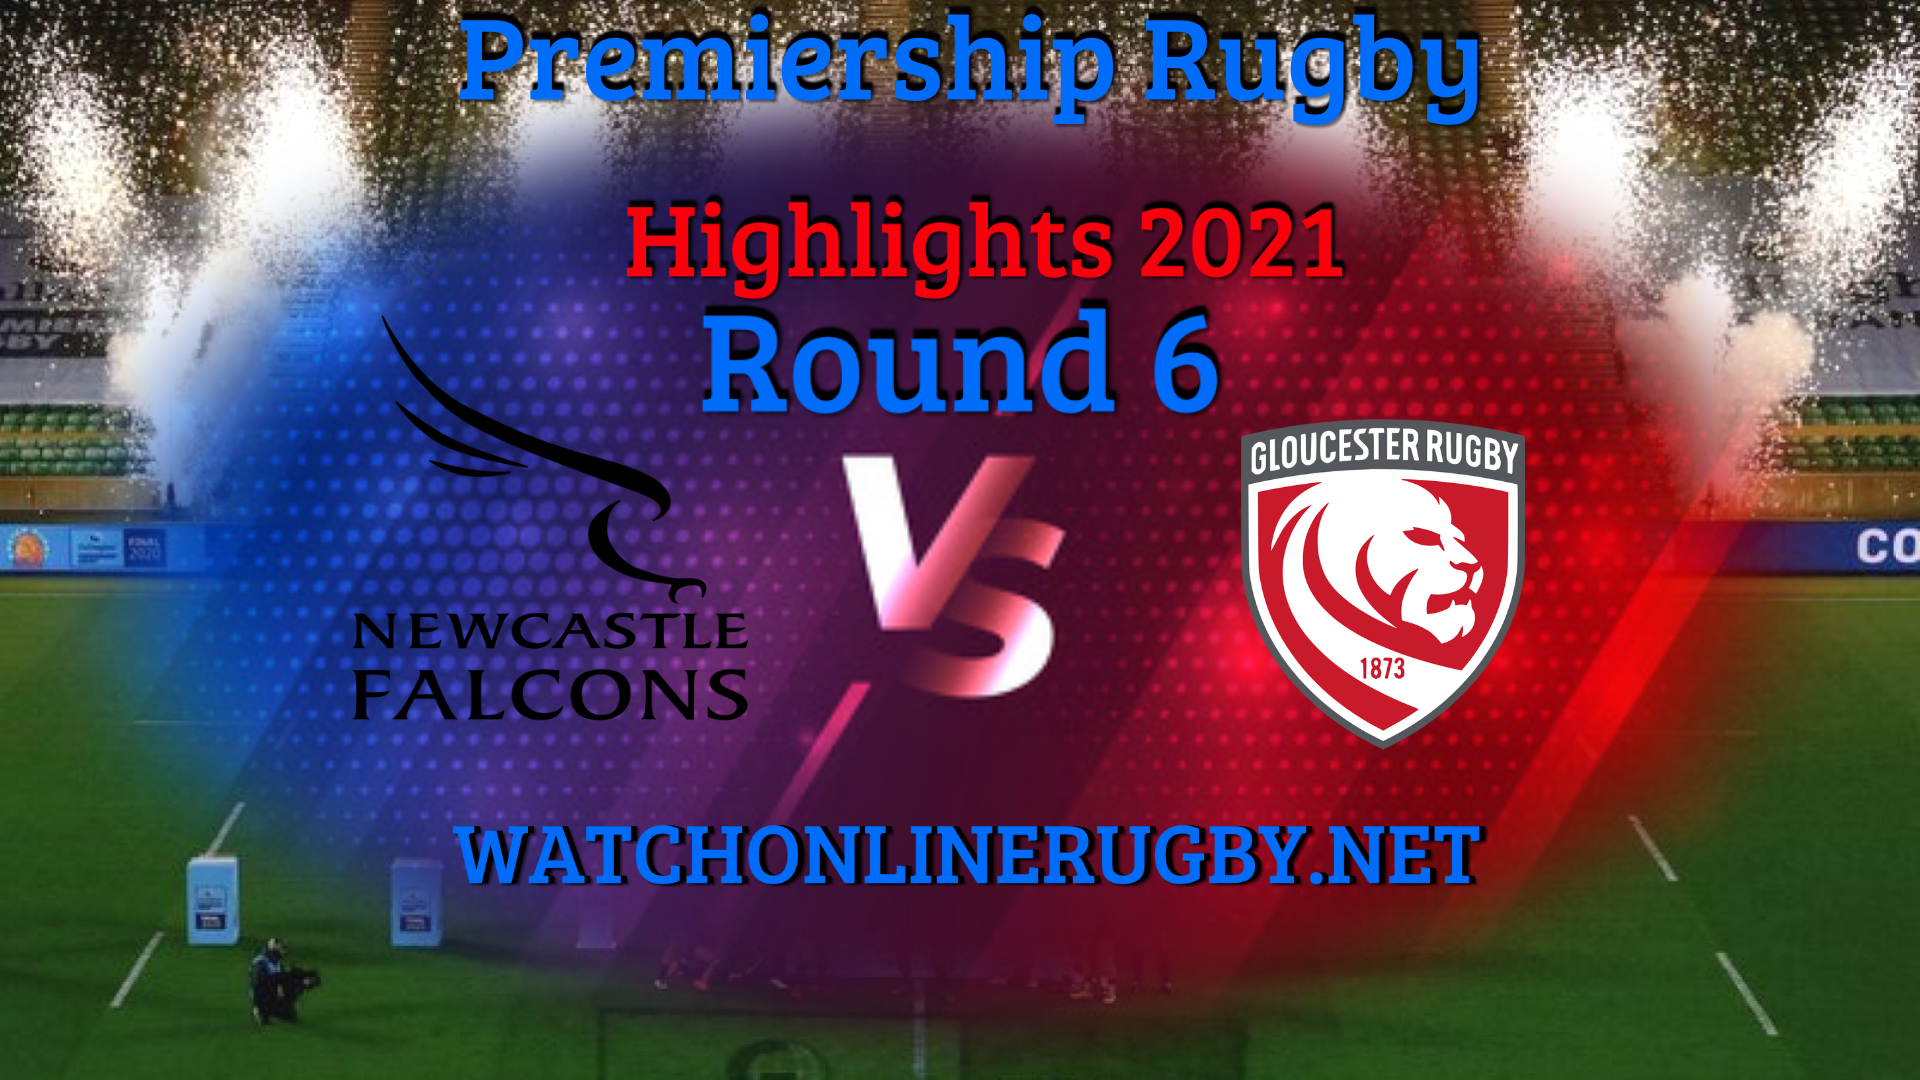 Newcastle Falcons VS Gloucester Rugby Premiership Rugby 2021 RD 6